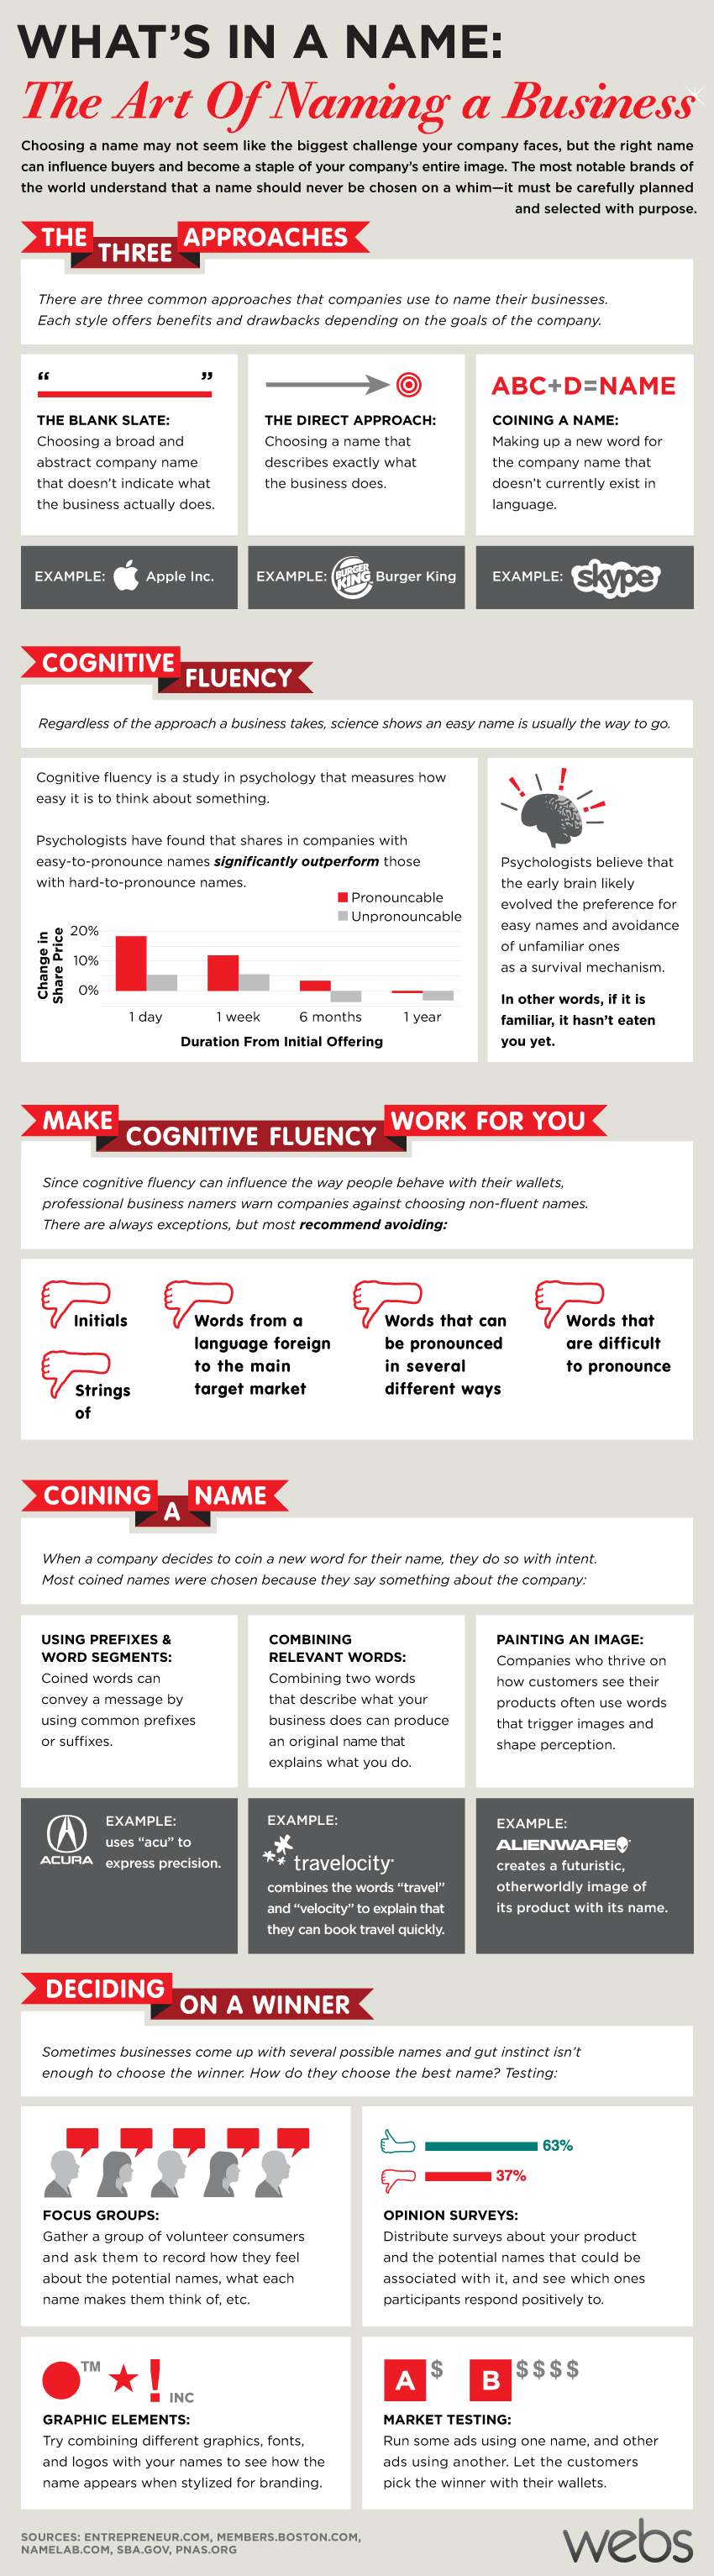 How-To-Name-a-Business-Infographic